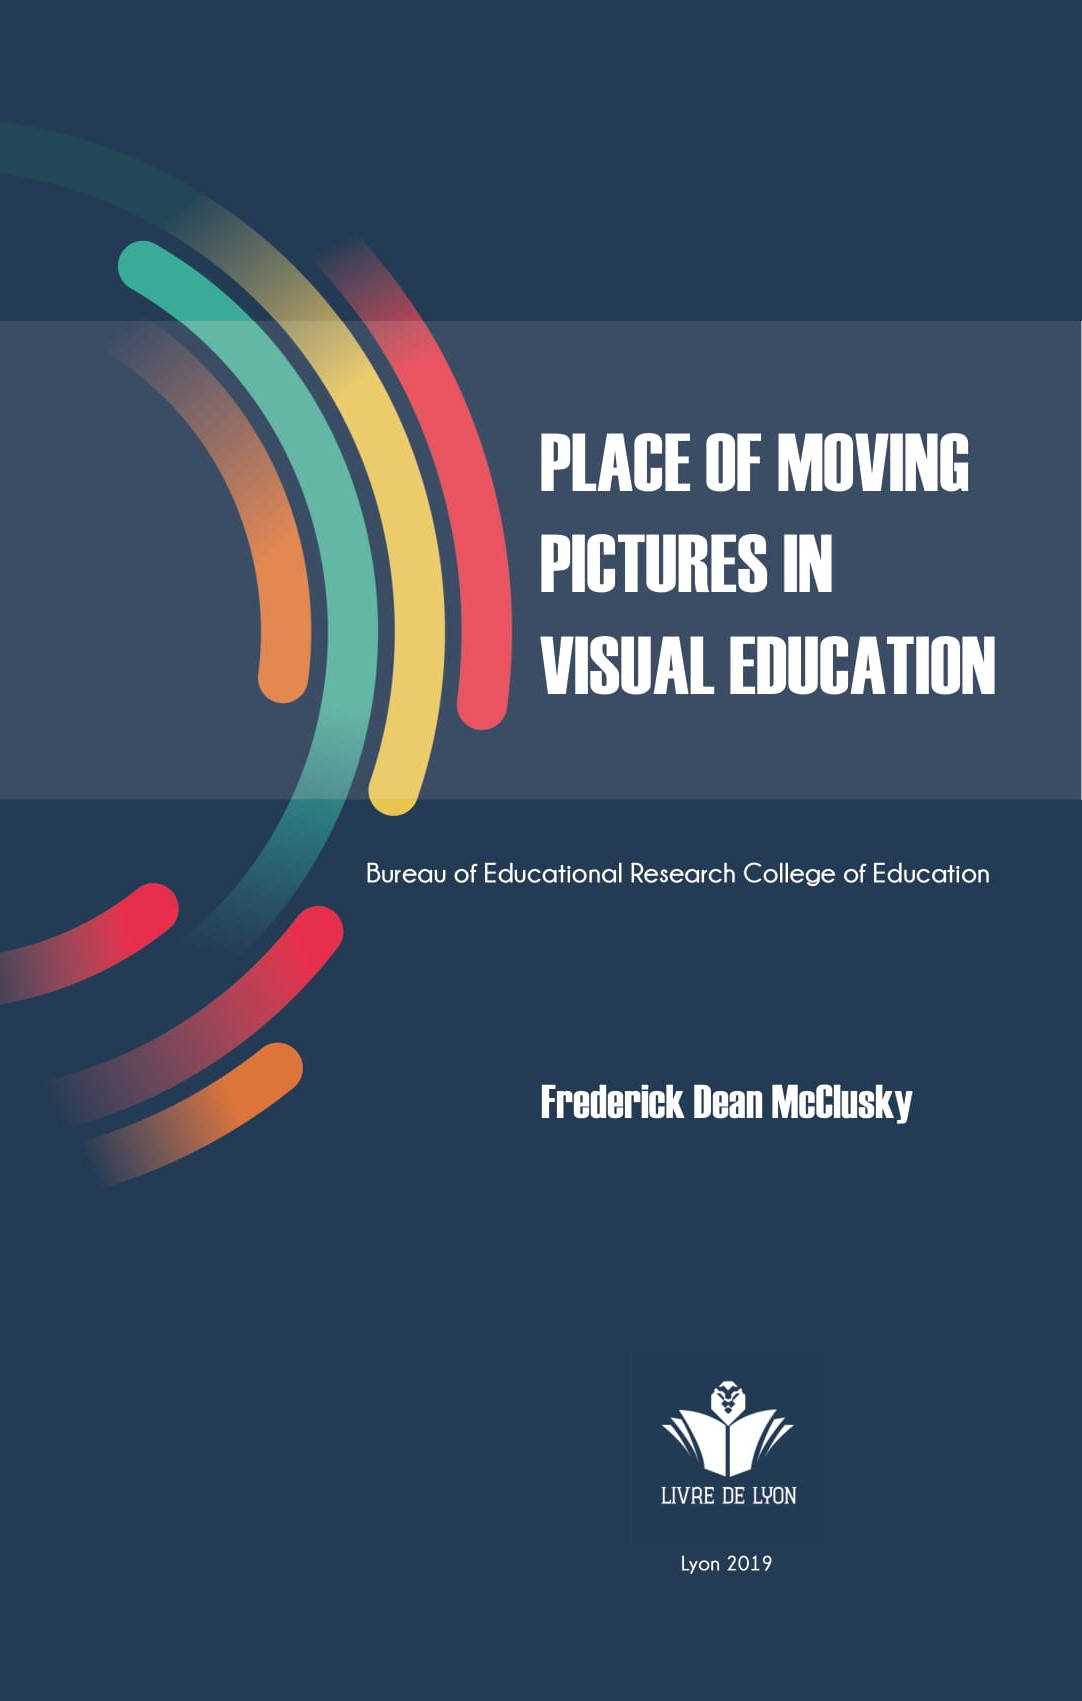 Place of Moving Pictures ın Visual Education